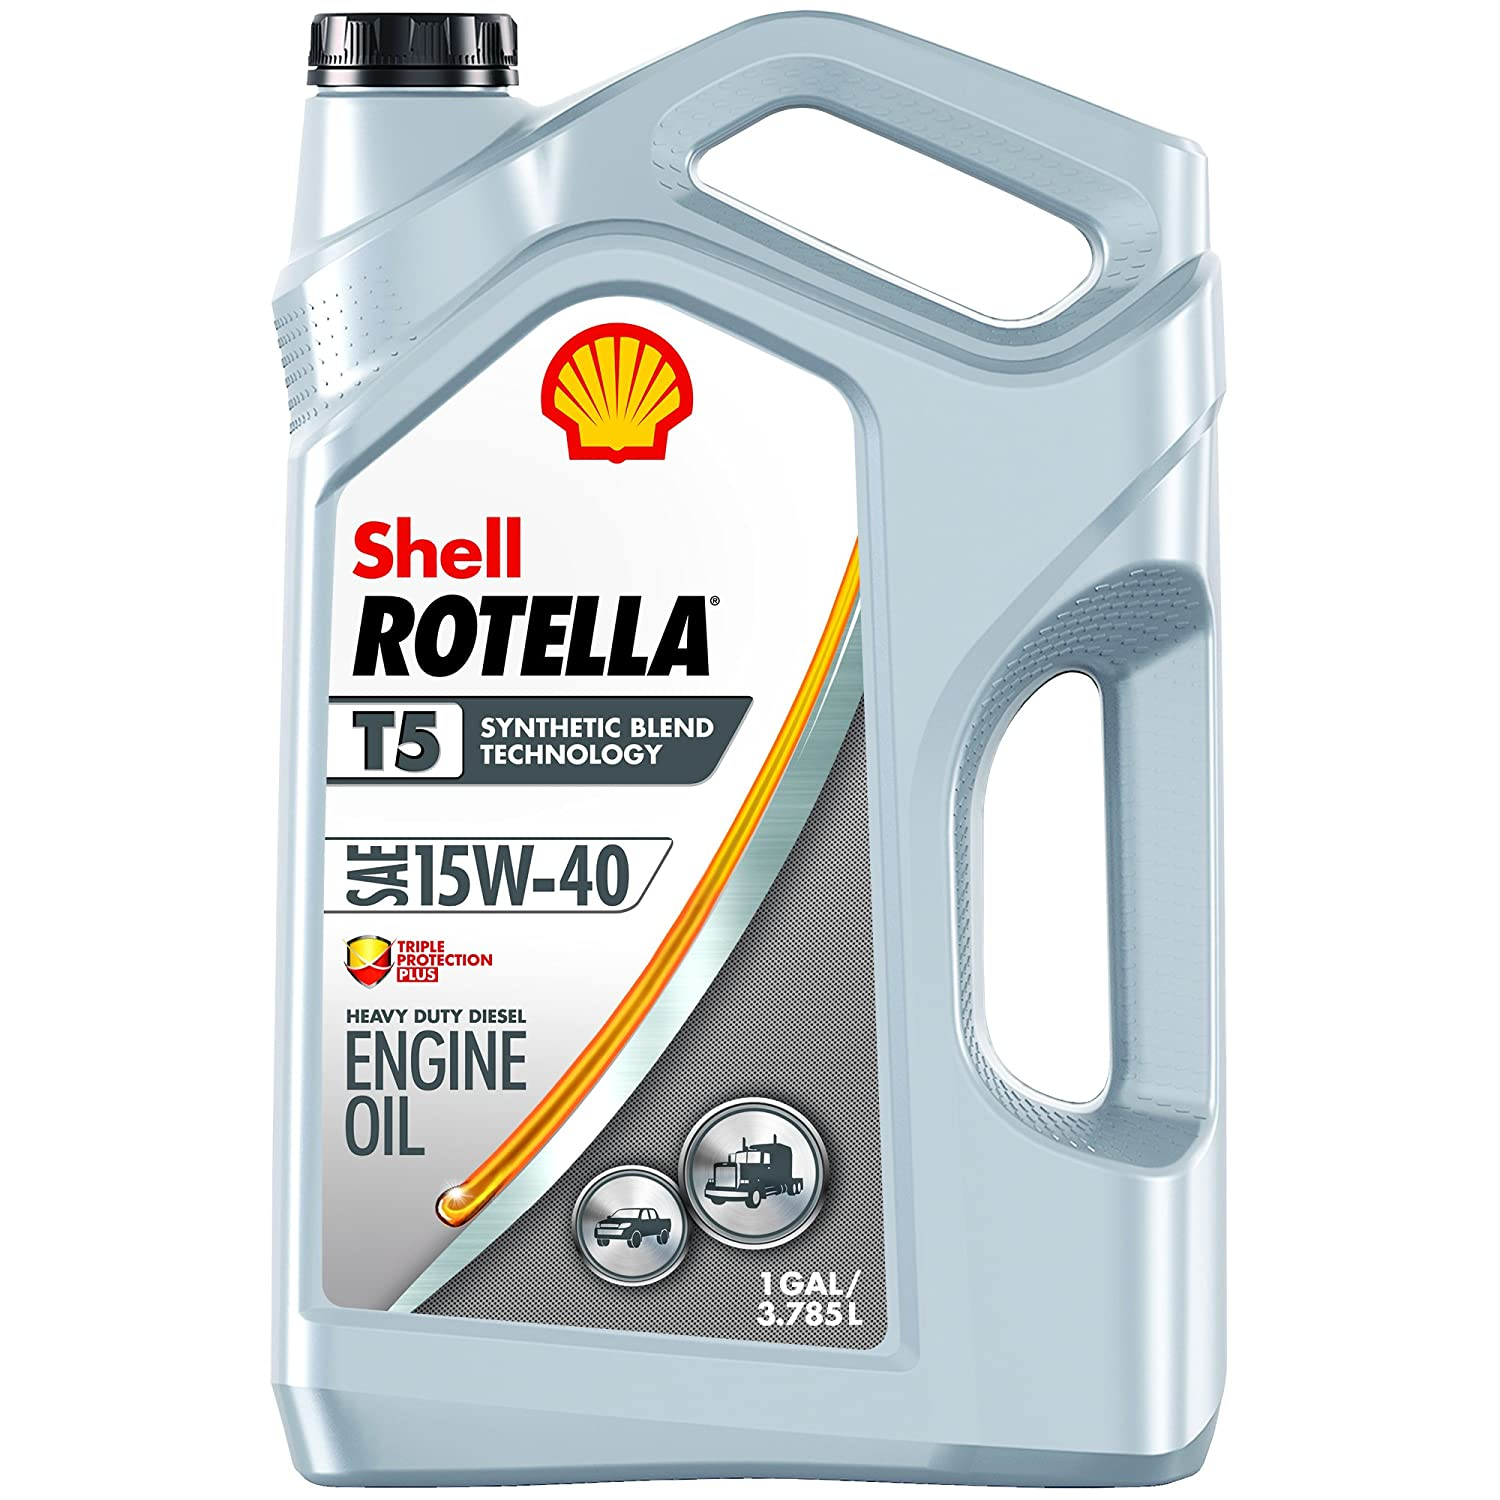 Rotella 550045348 T5 Synthetic Blend (15W-40 CK-4), 1 Gallon